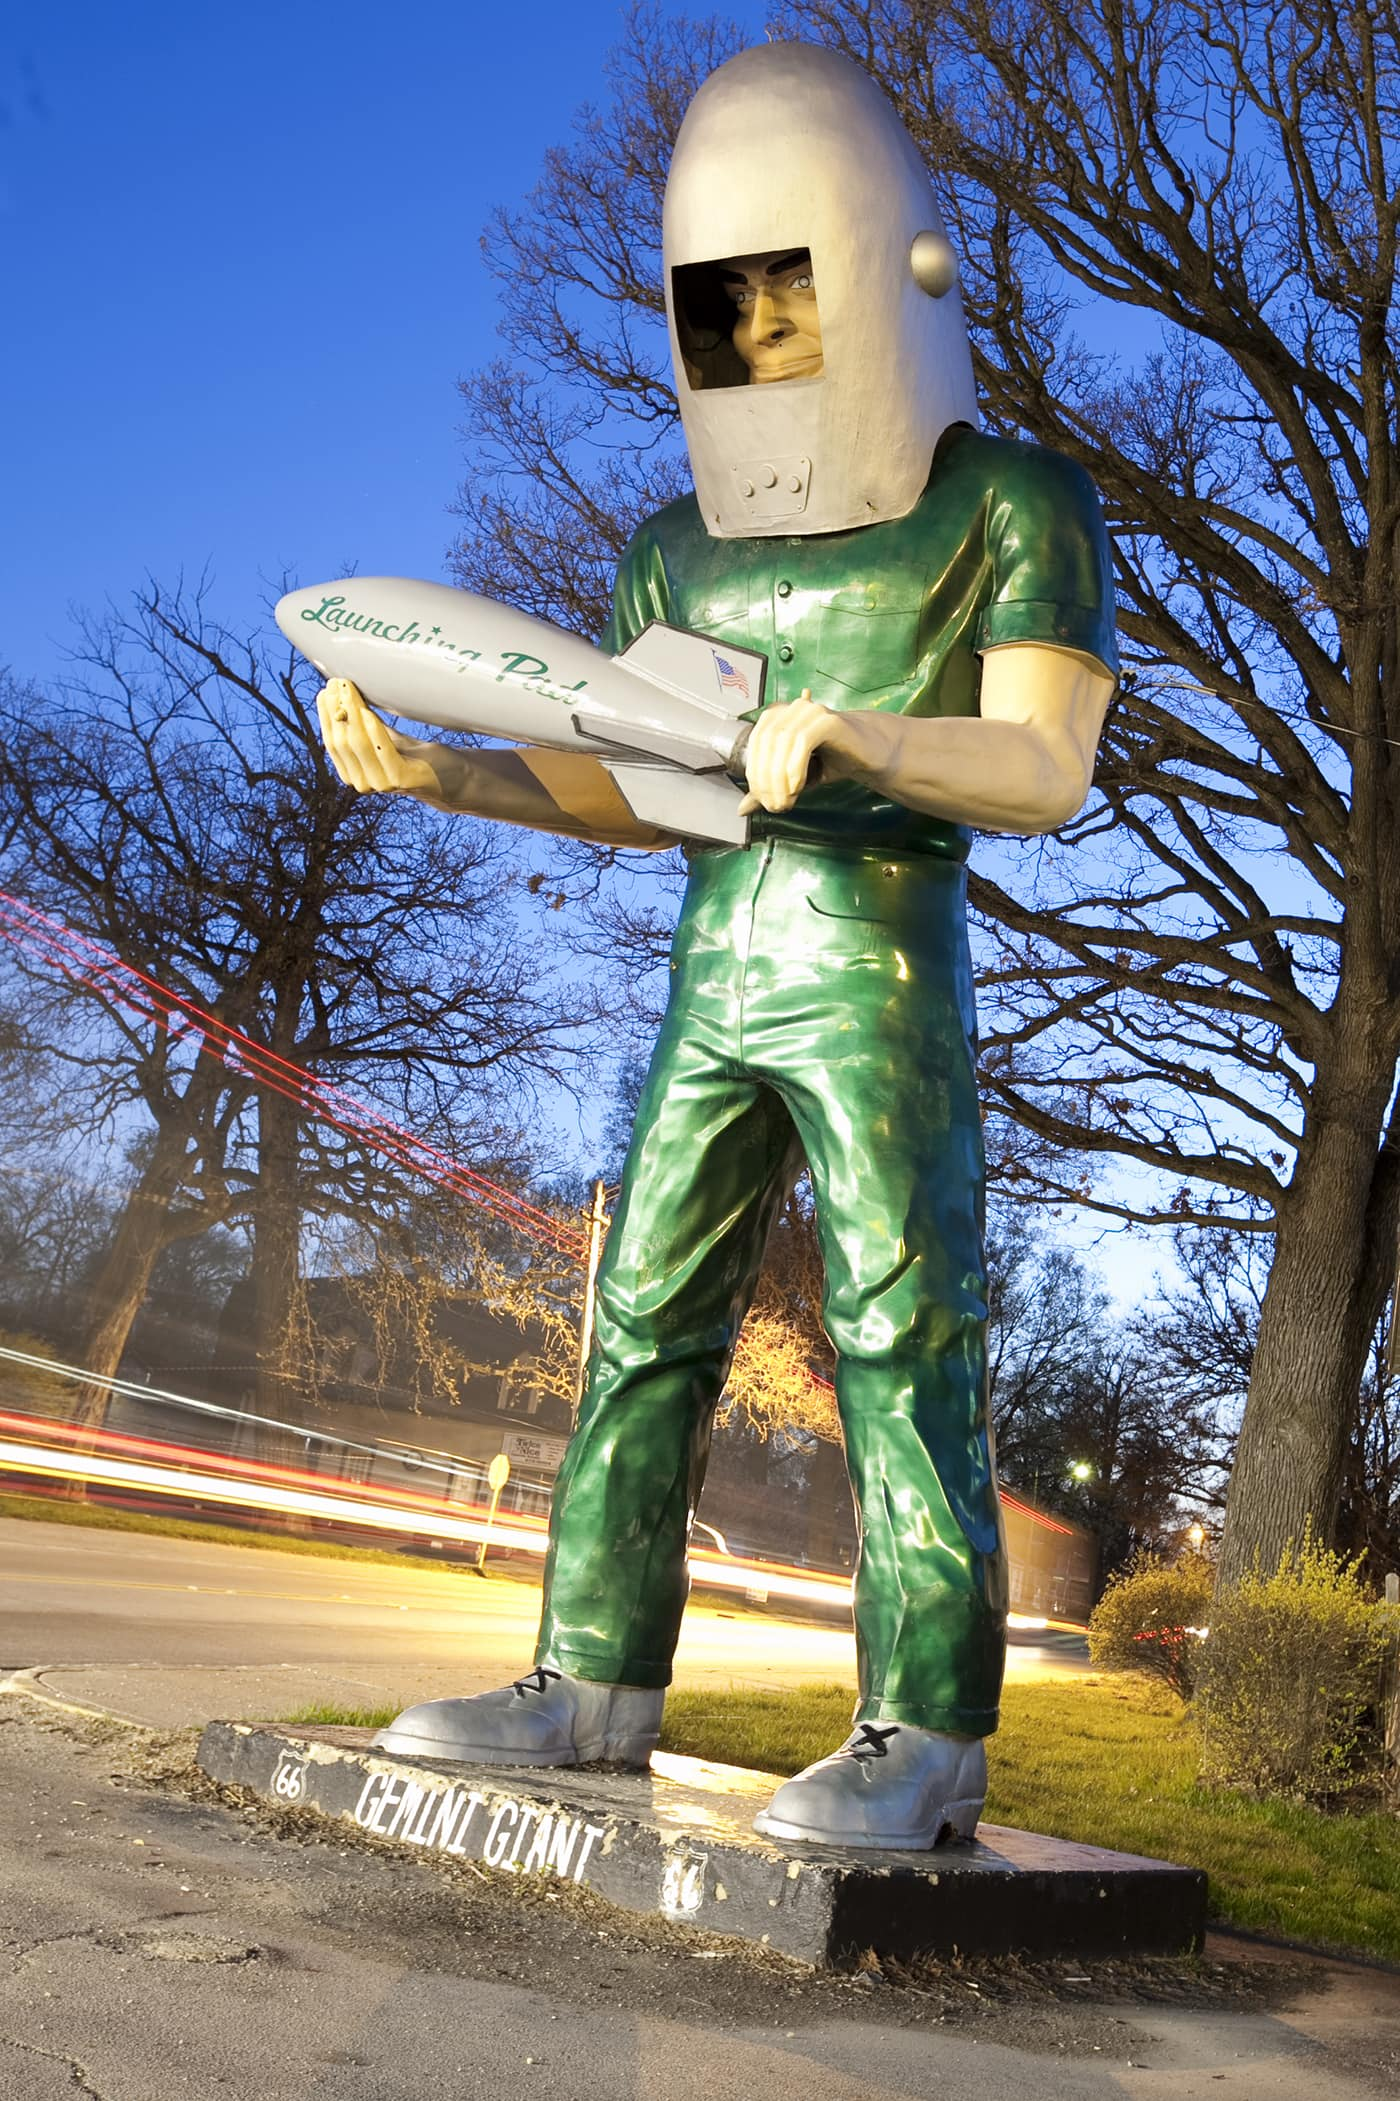 Gemini Giant muffler man at the Launching Pad in Wilmington, Illinois